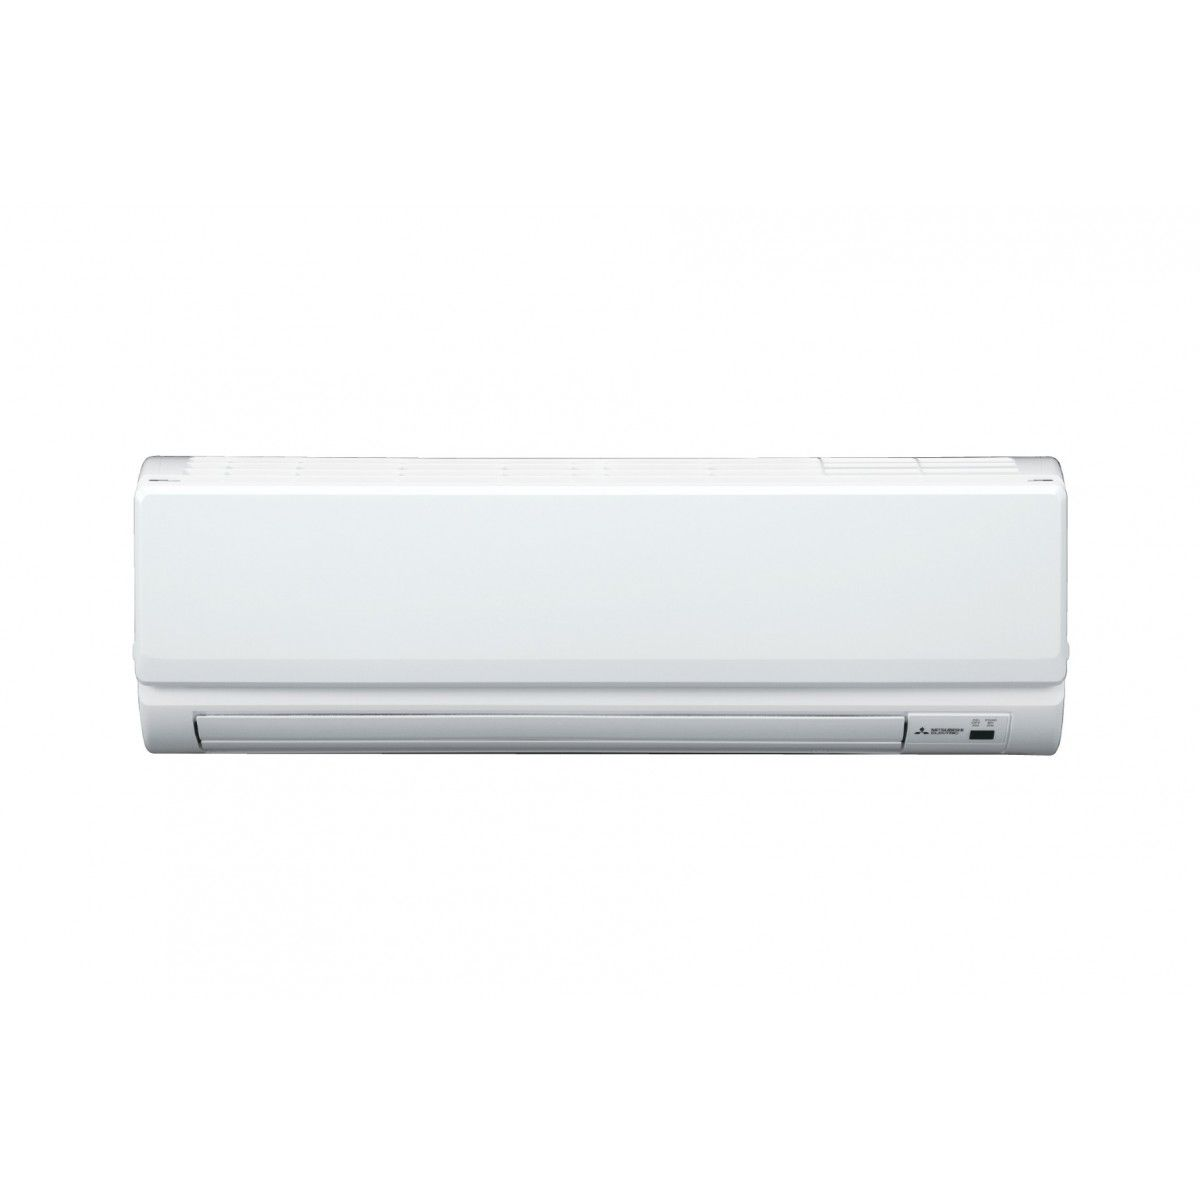 18k btu mitsubishi pkaa wall mounted indoor unit in Ductless ac